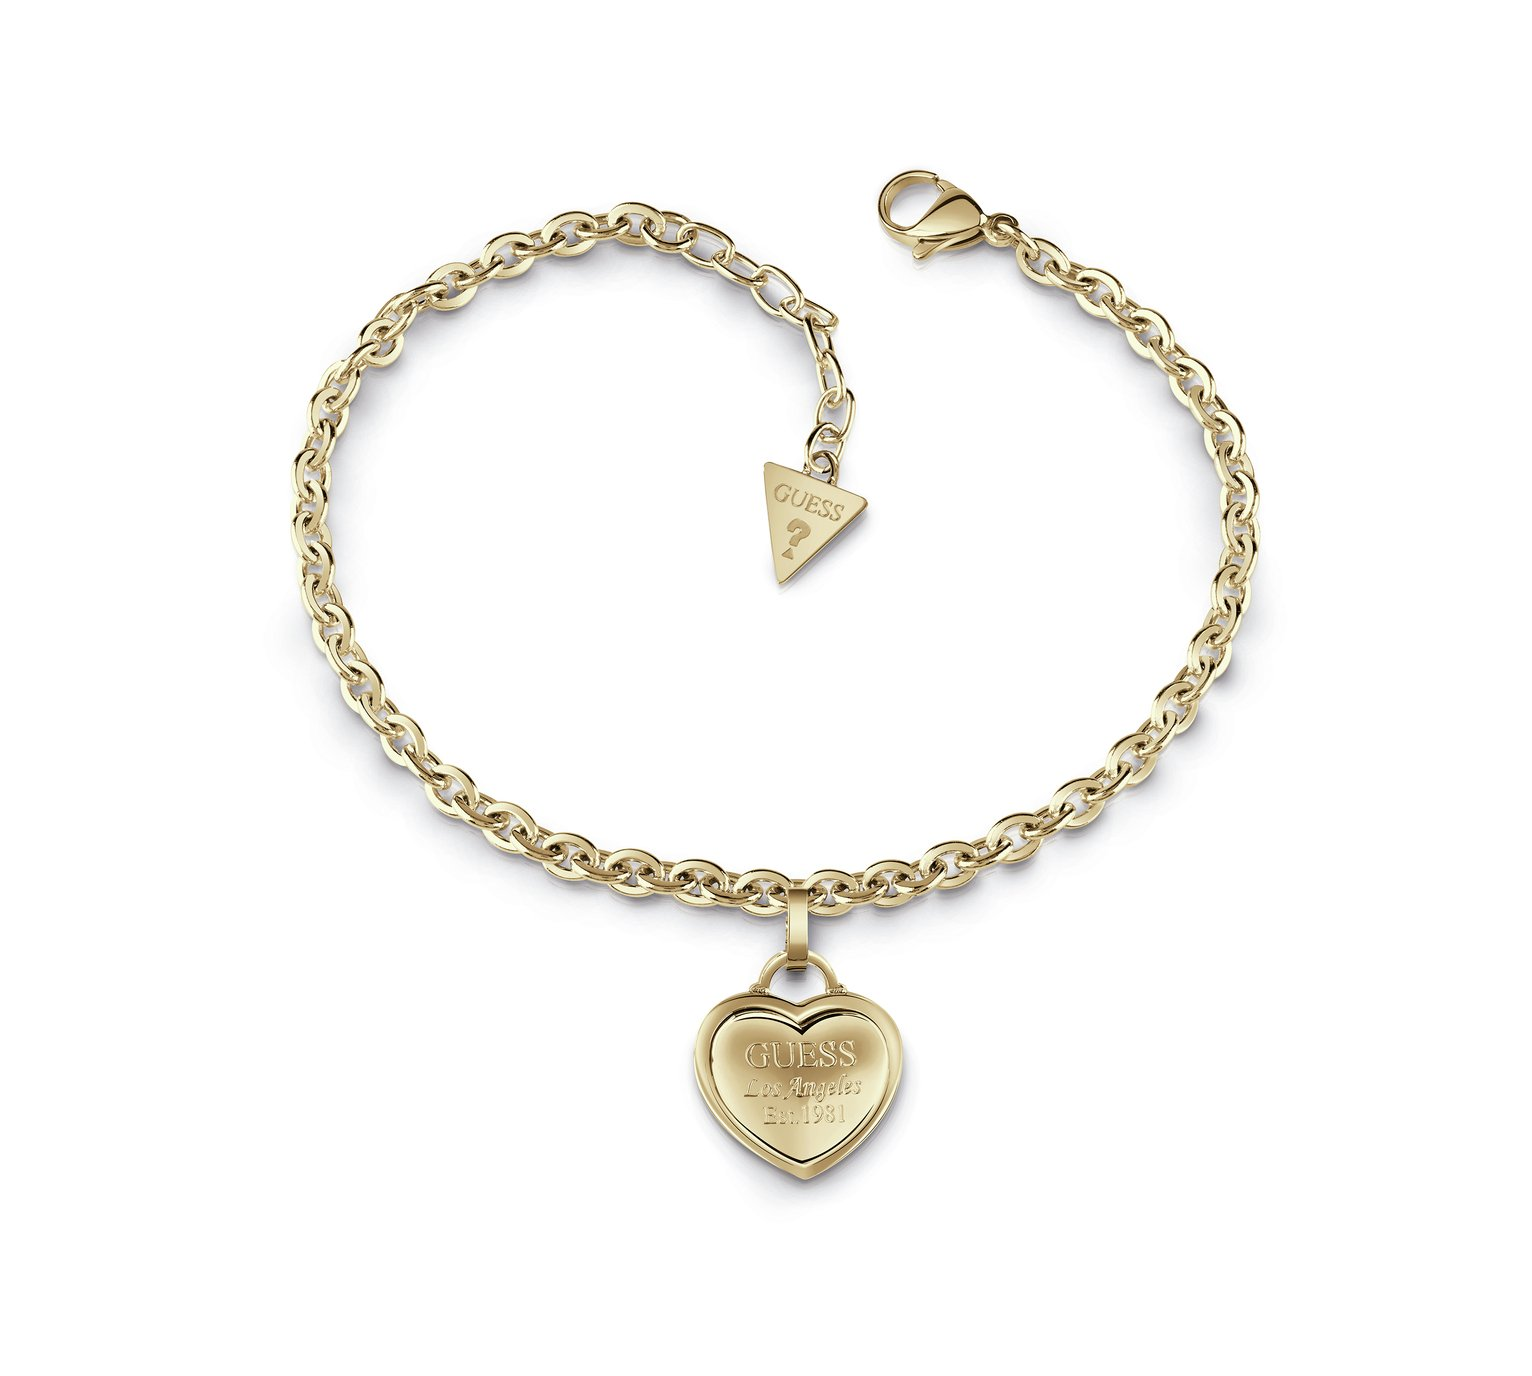 Guess Gold Plated Logo Heart Charm Bracelet